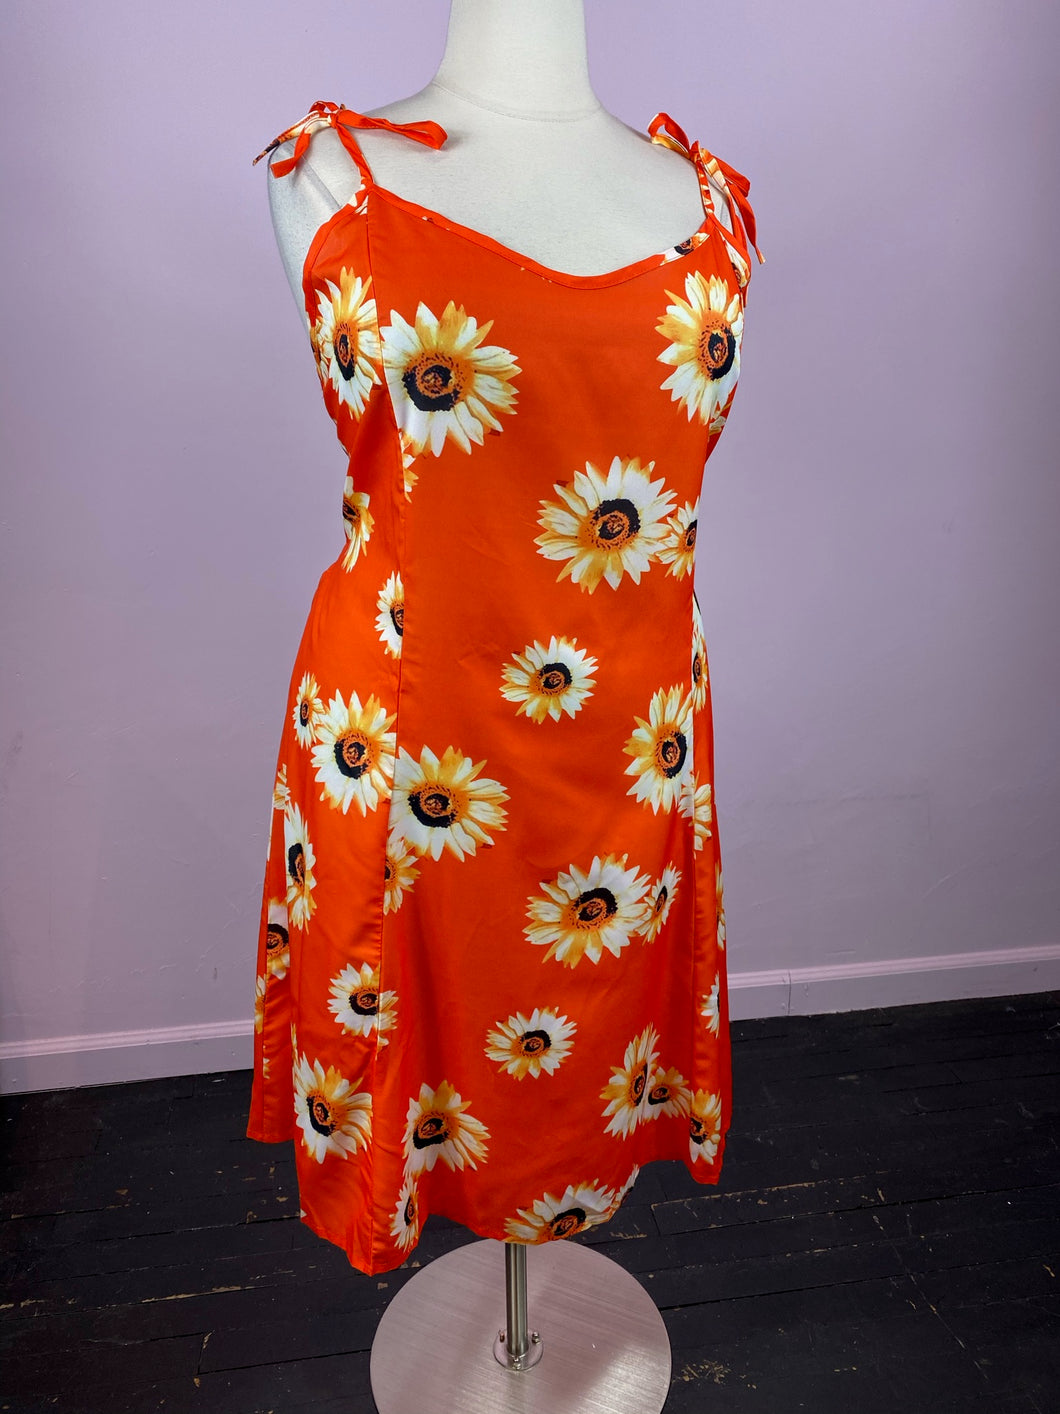 Red-Orange Midi Dress with Realistic Sunflower Pattern by YOINS, Size 3X